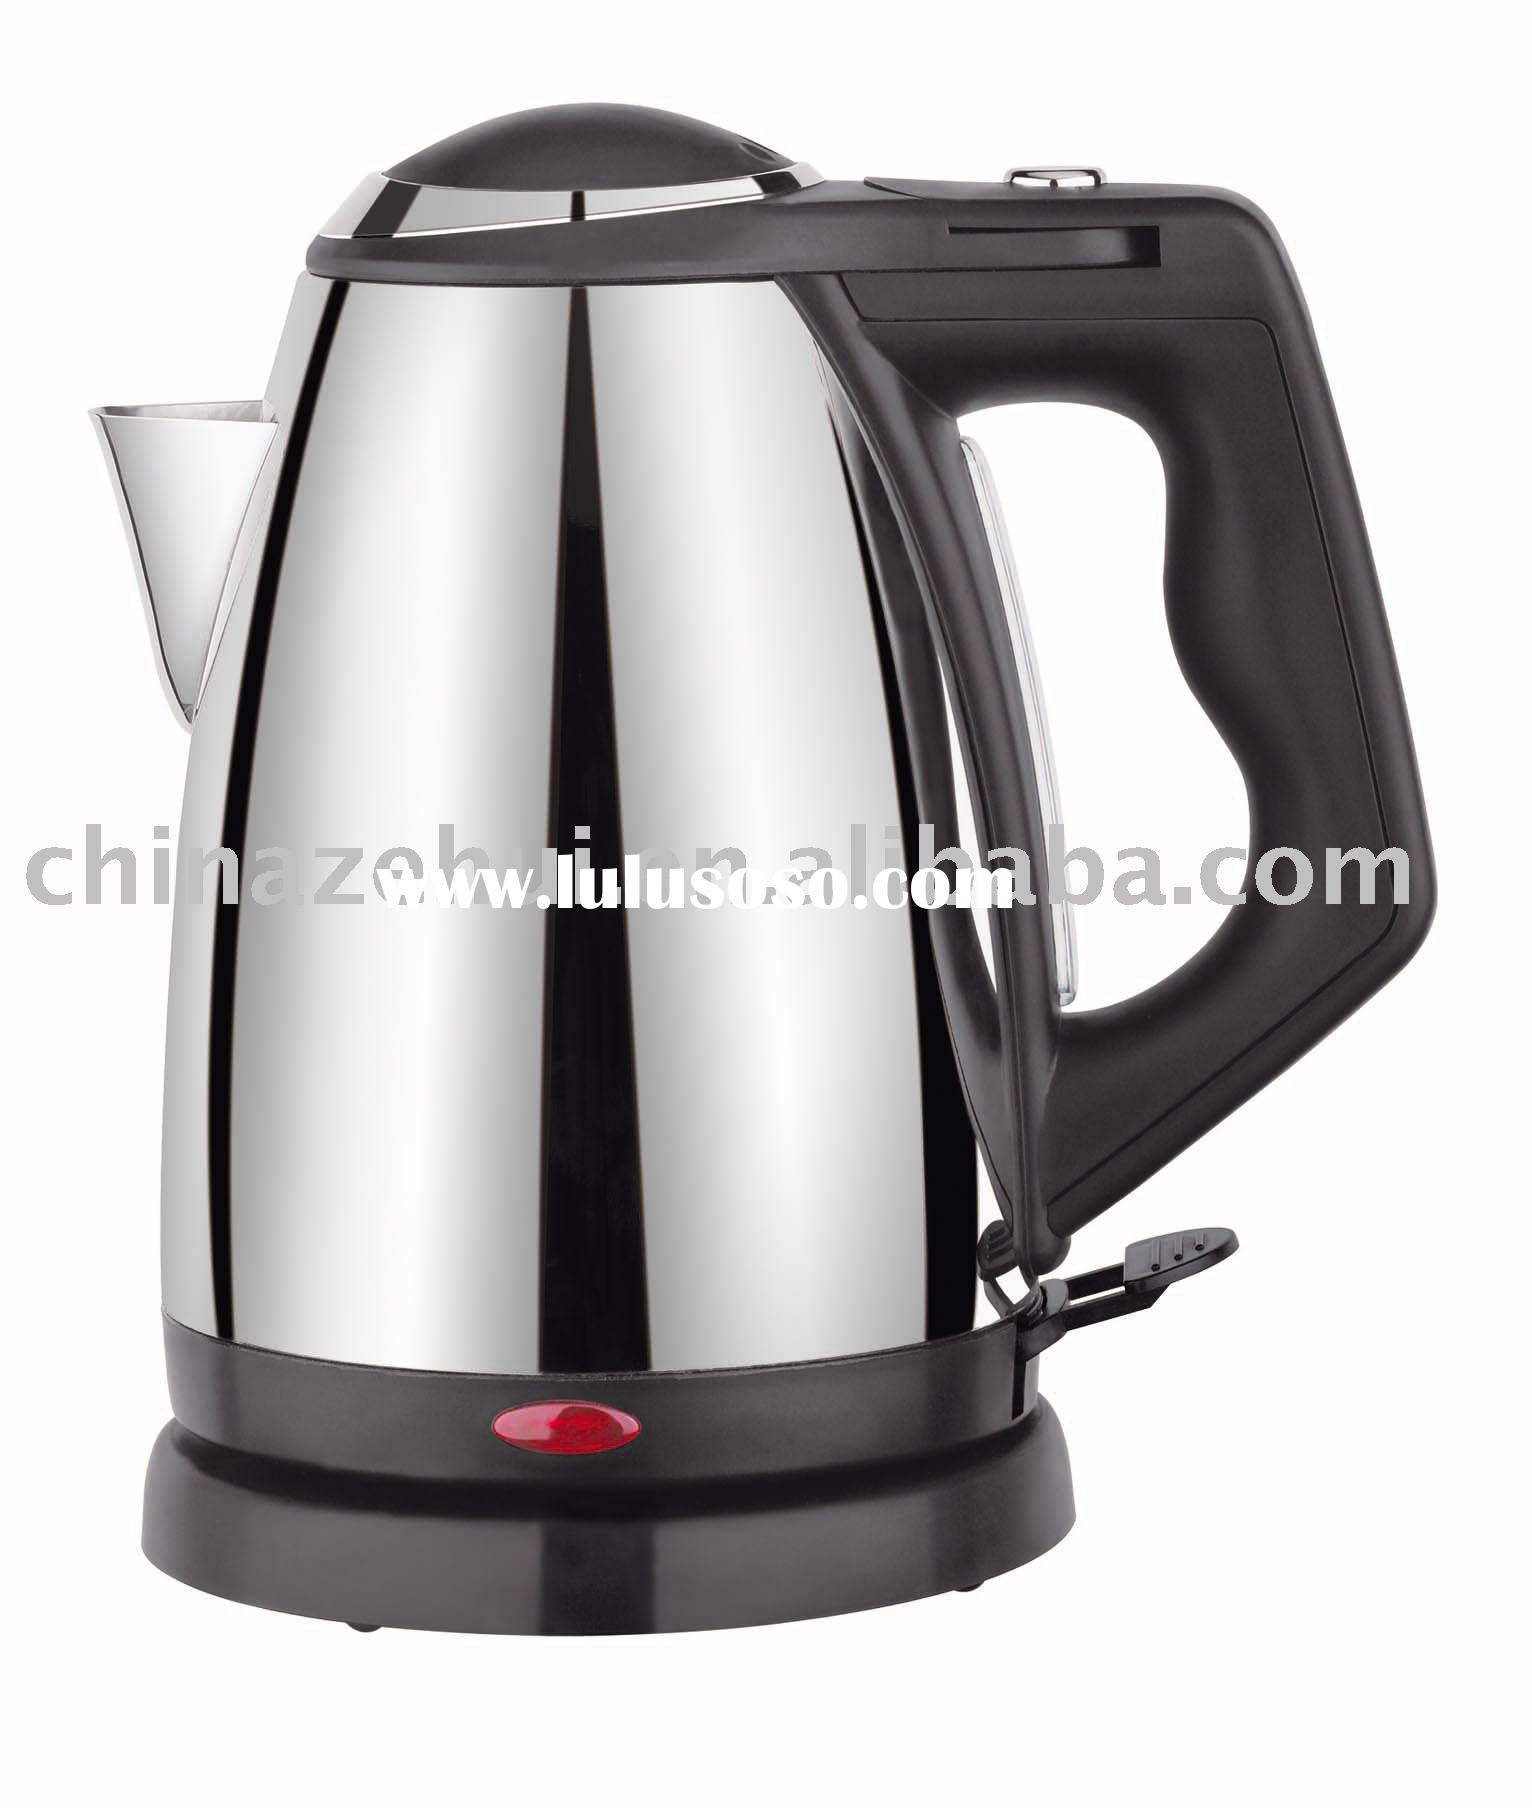 1.5L Electric kettle or water kettle